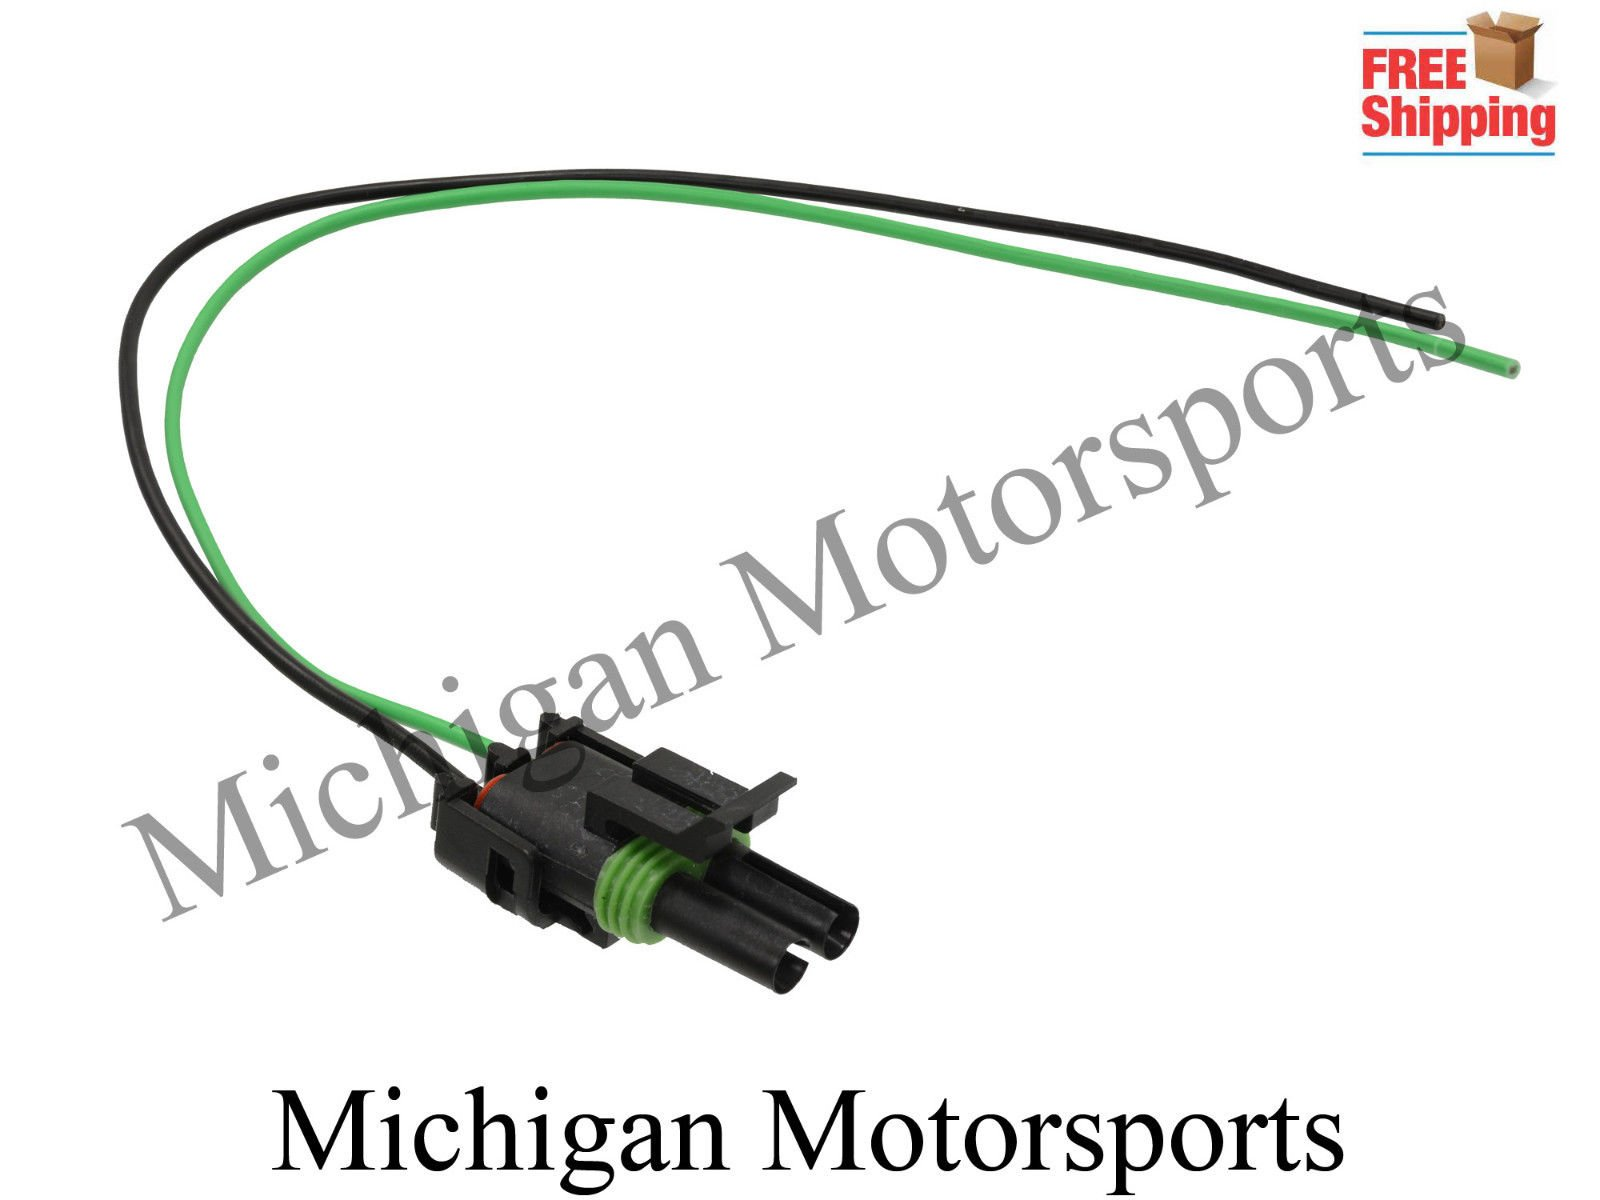 Michigan Motorsports T56 Manual Transmission Wire Harness